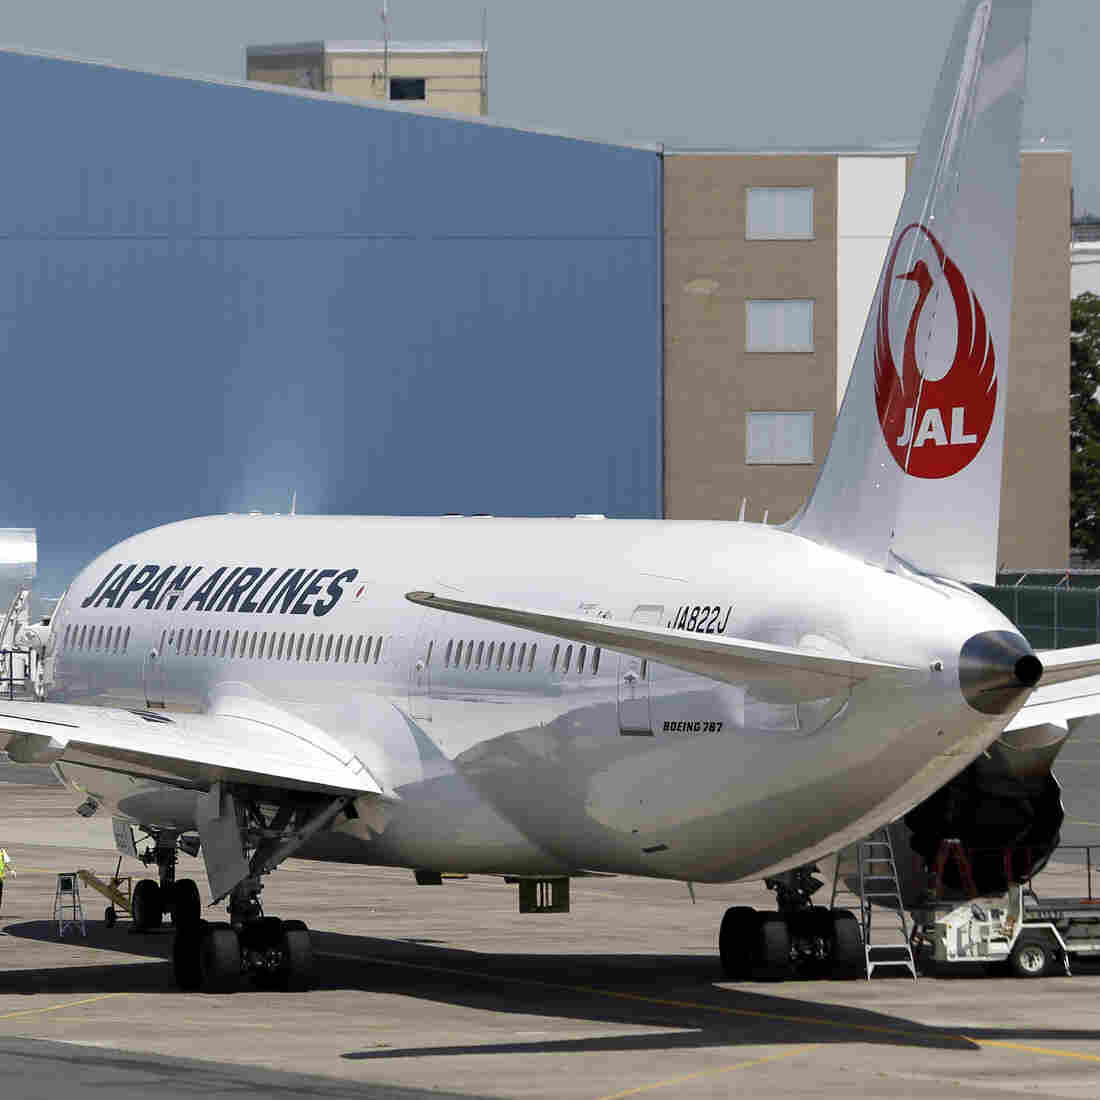 Battery Problem Reported On Boeing Dreamliner In Japan